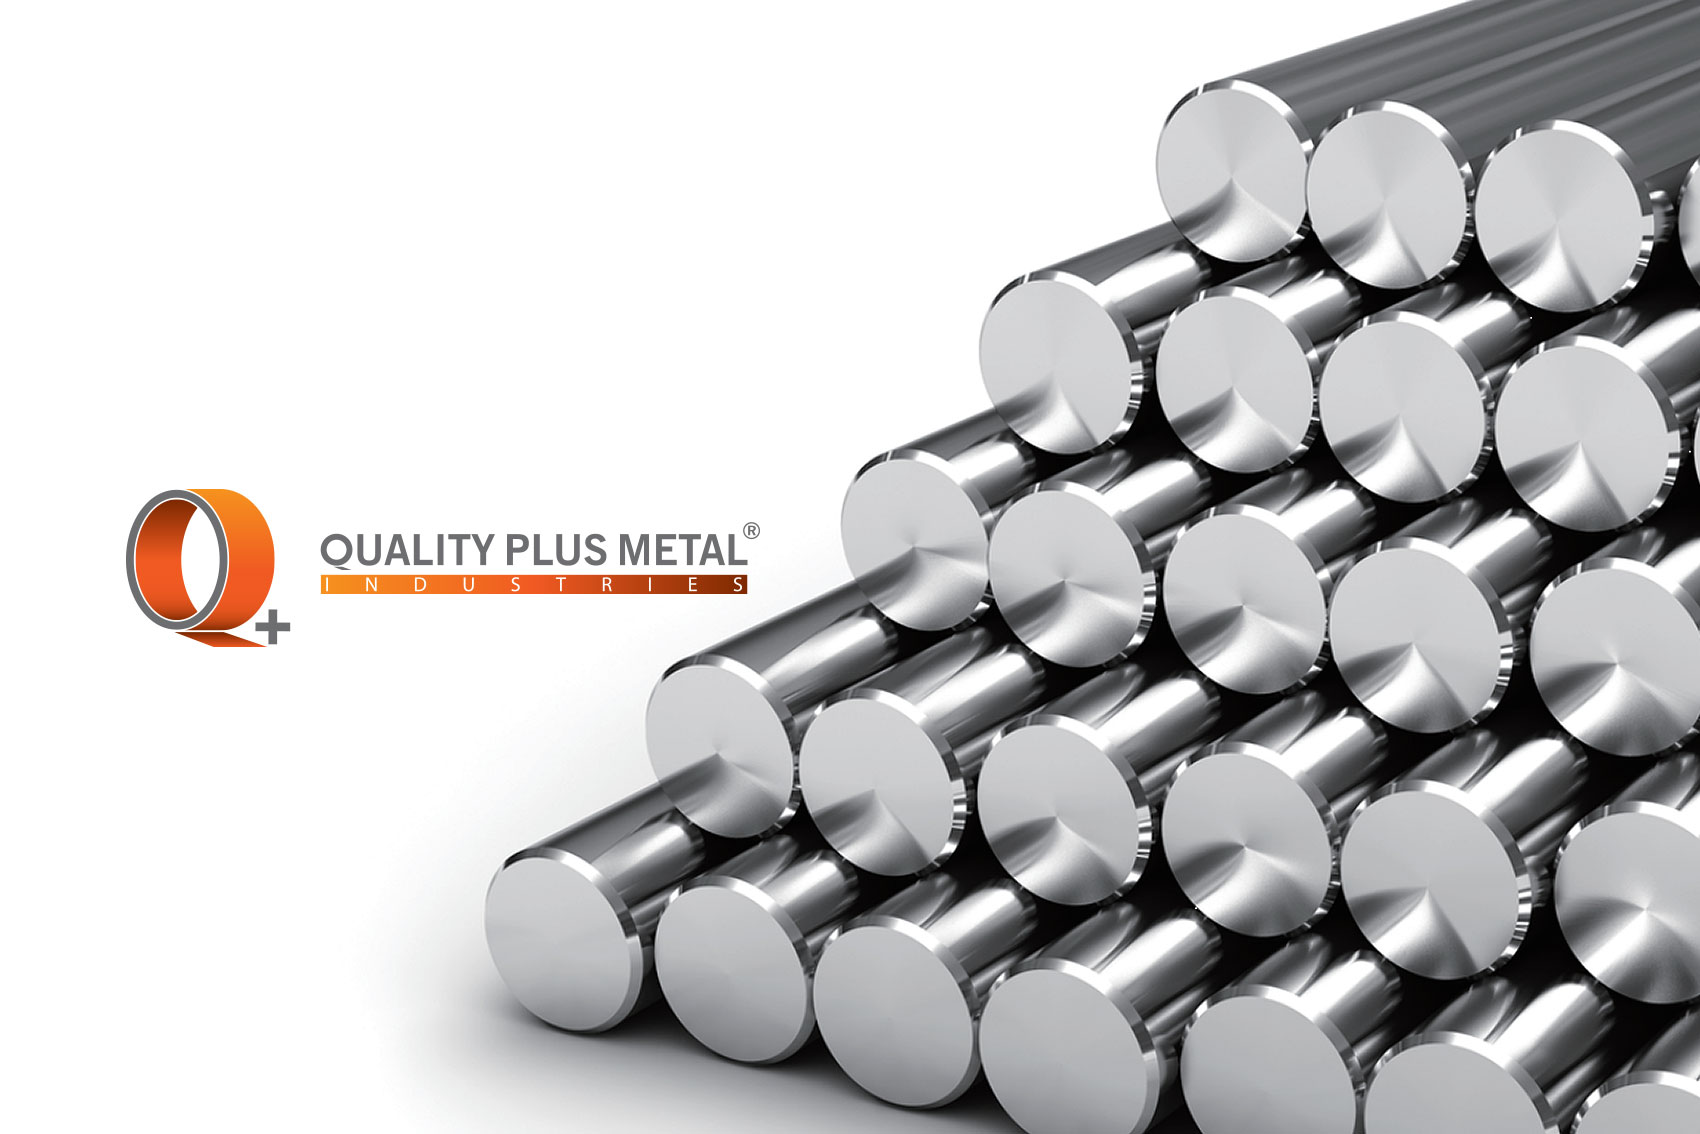 Quality Plus Metal